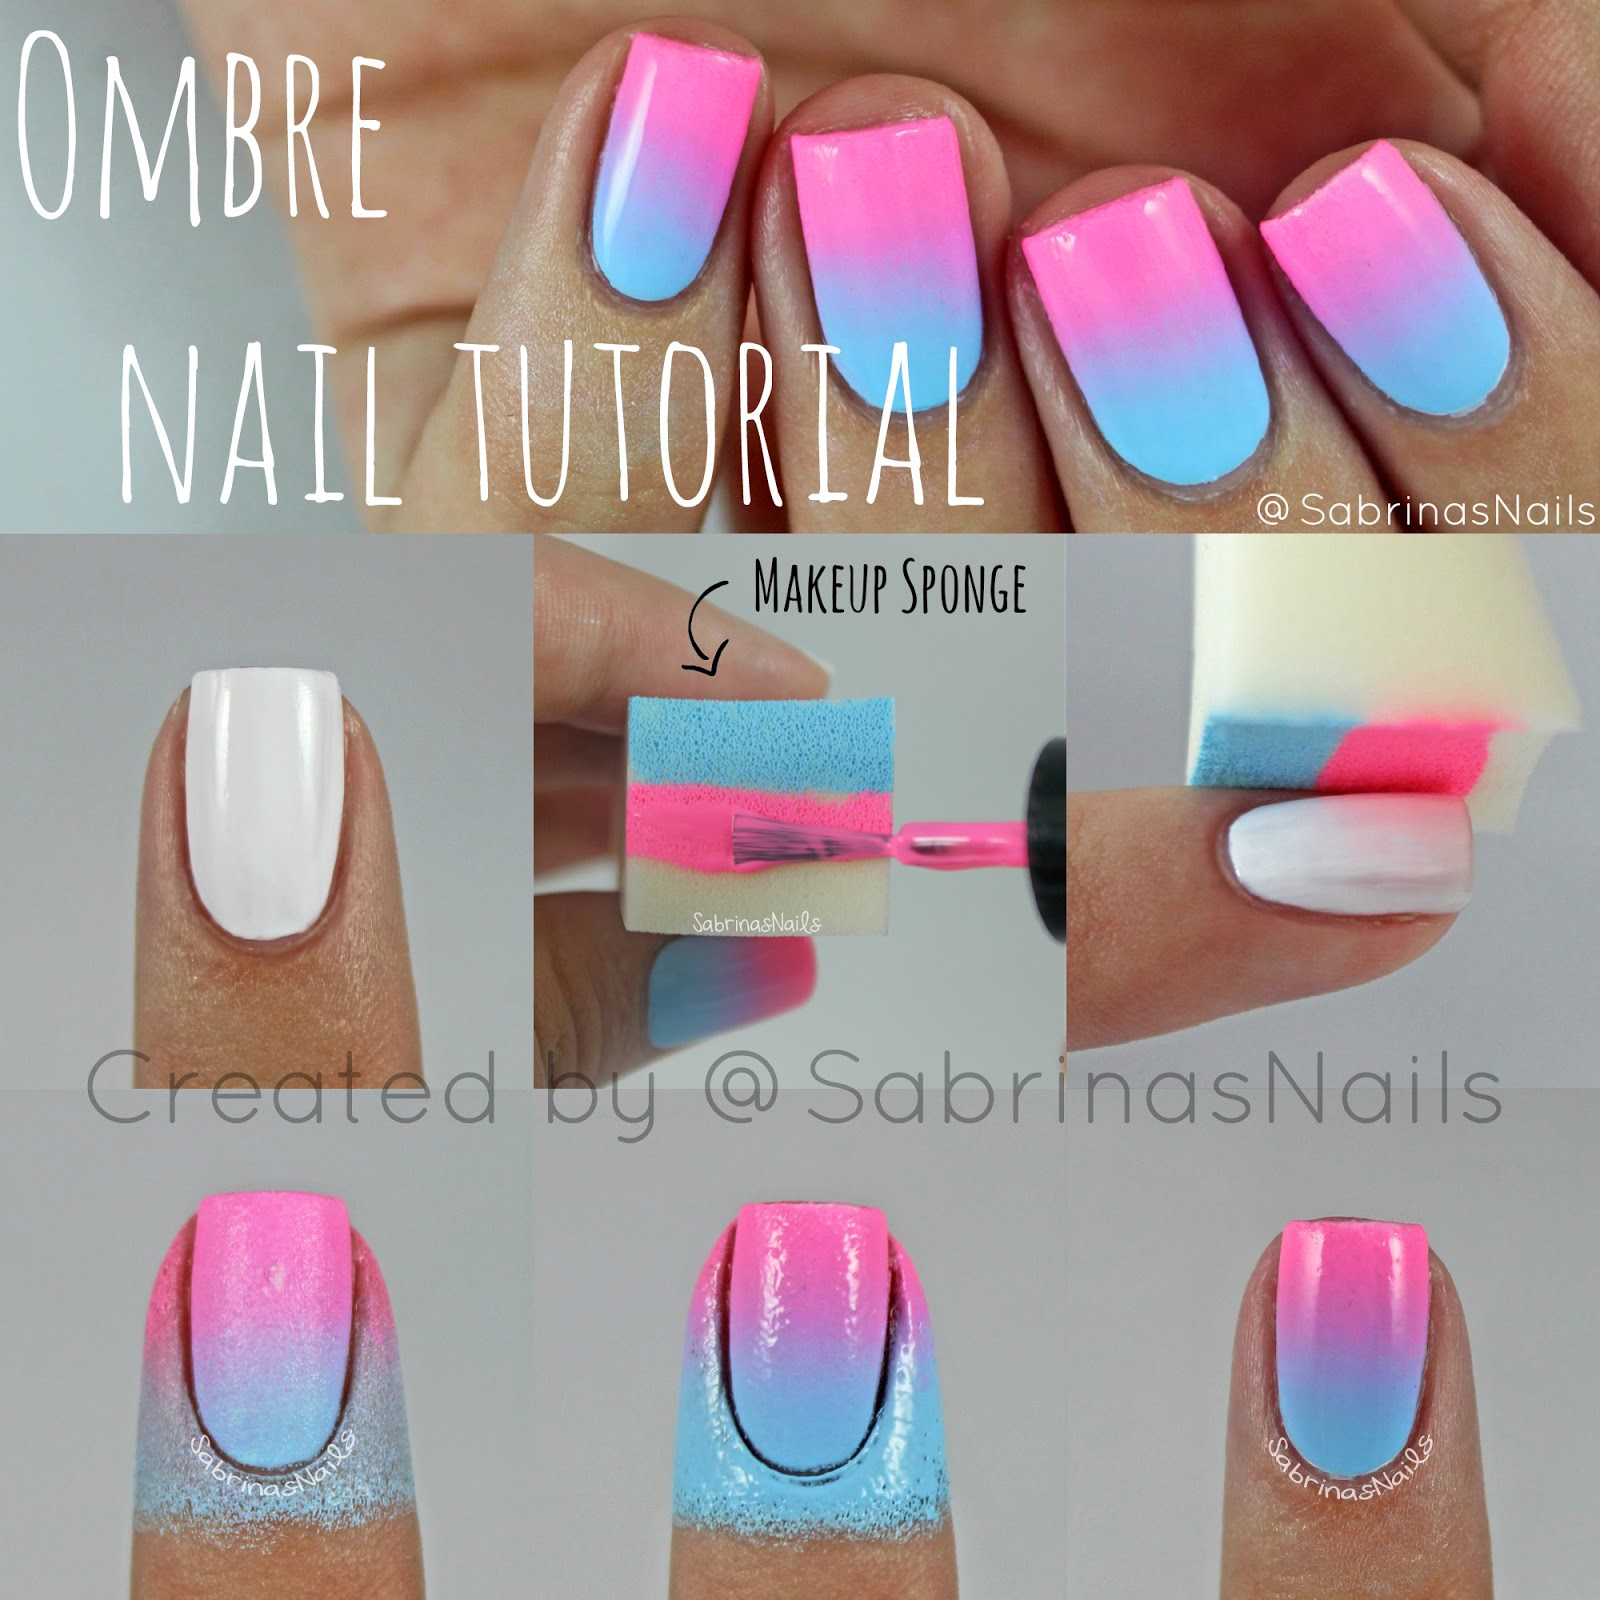 Sabrinas Nails: Ombre Nail Tutorial